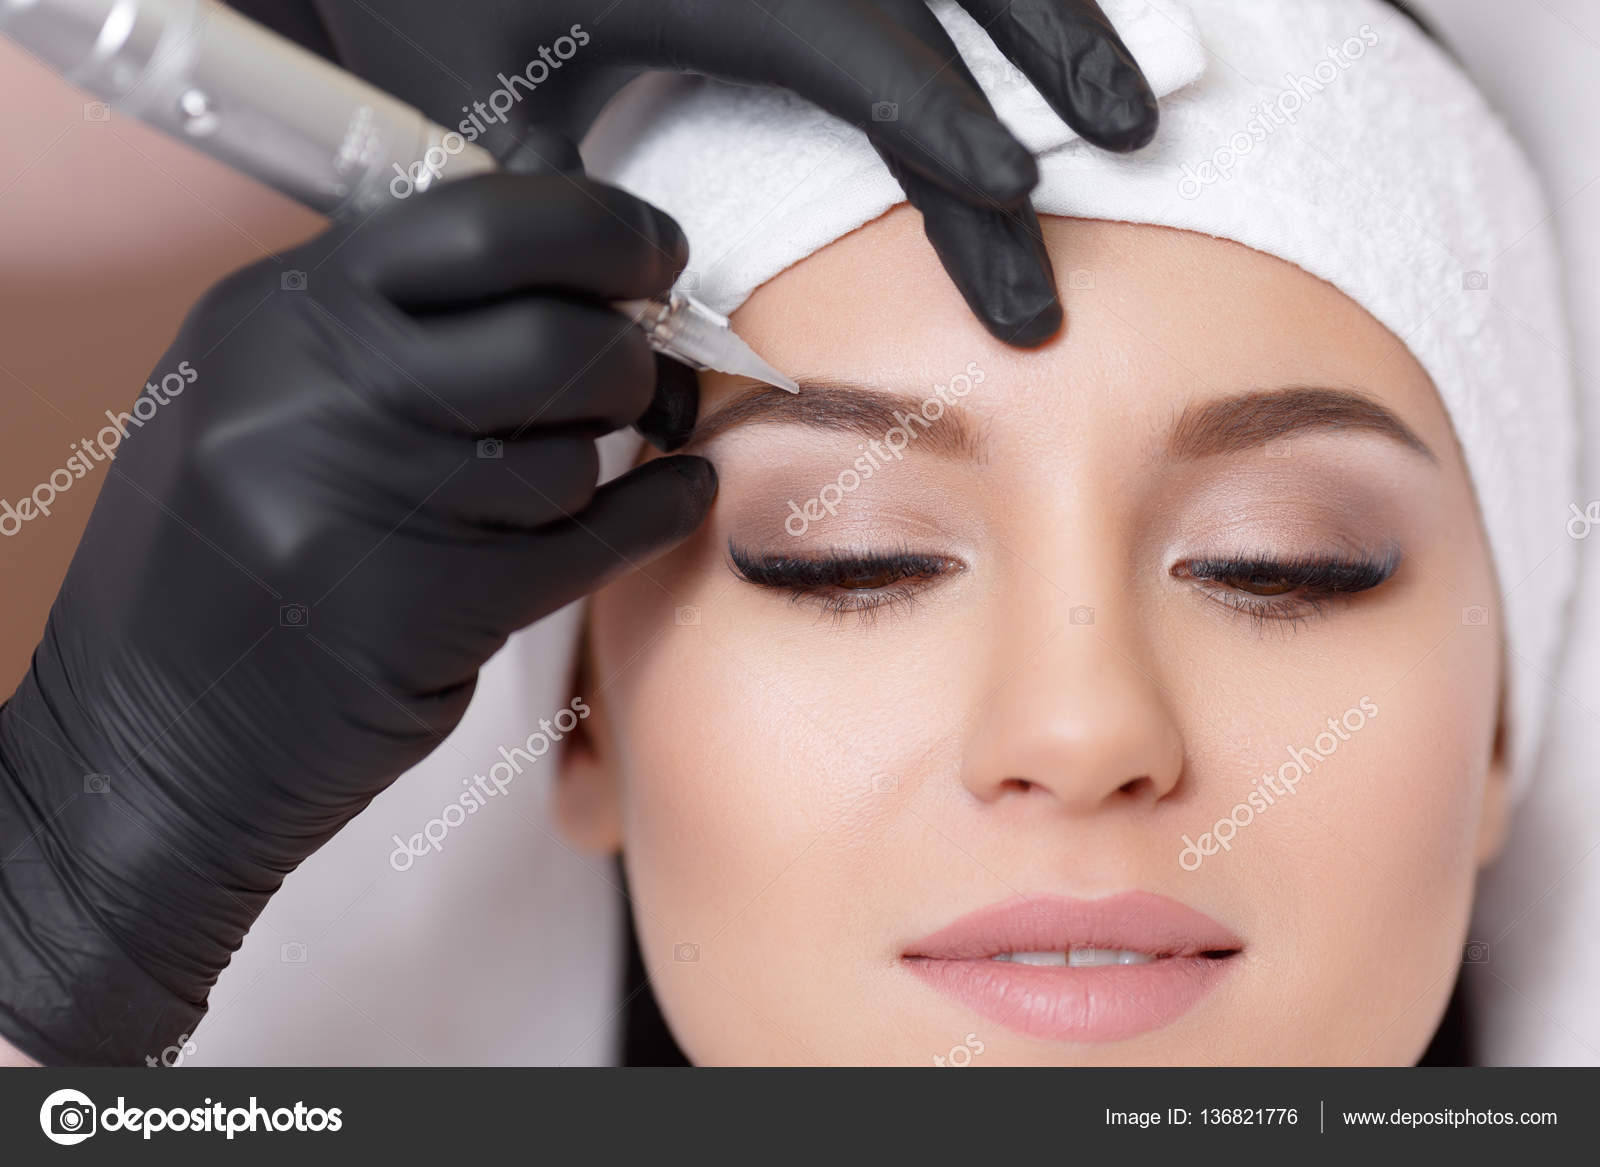 Makeup tattooing courses fay blog for Tattoo eyebrows nj